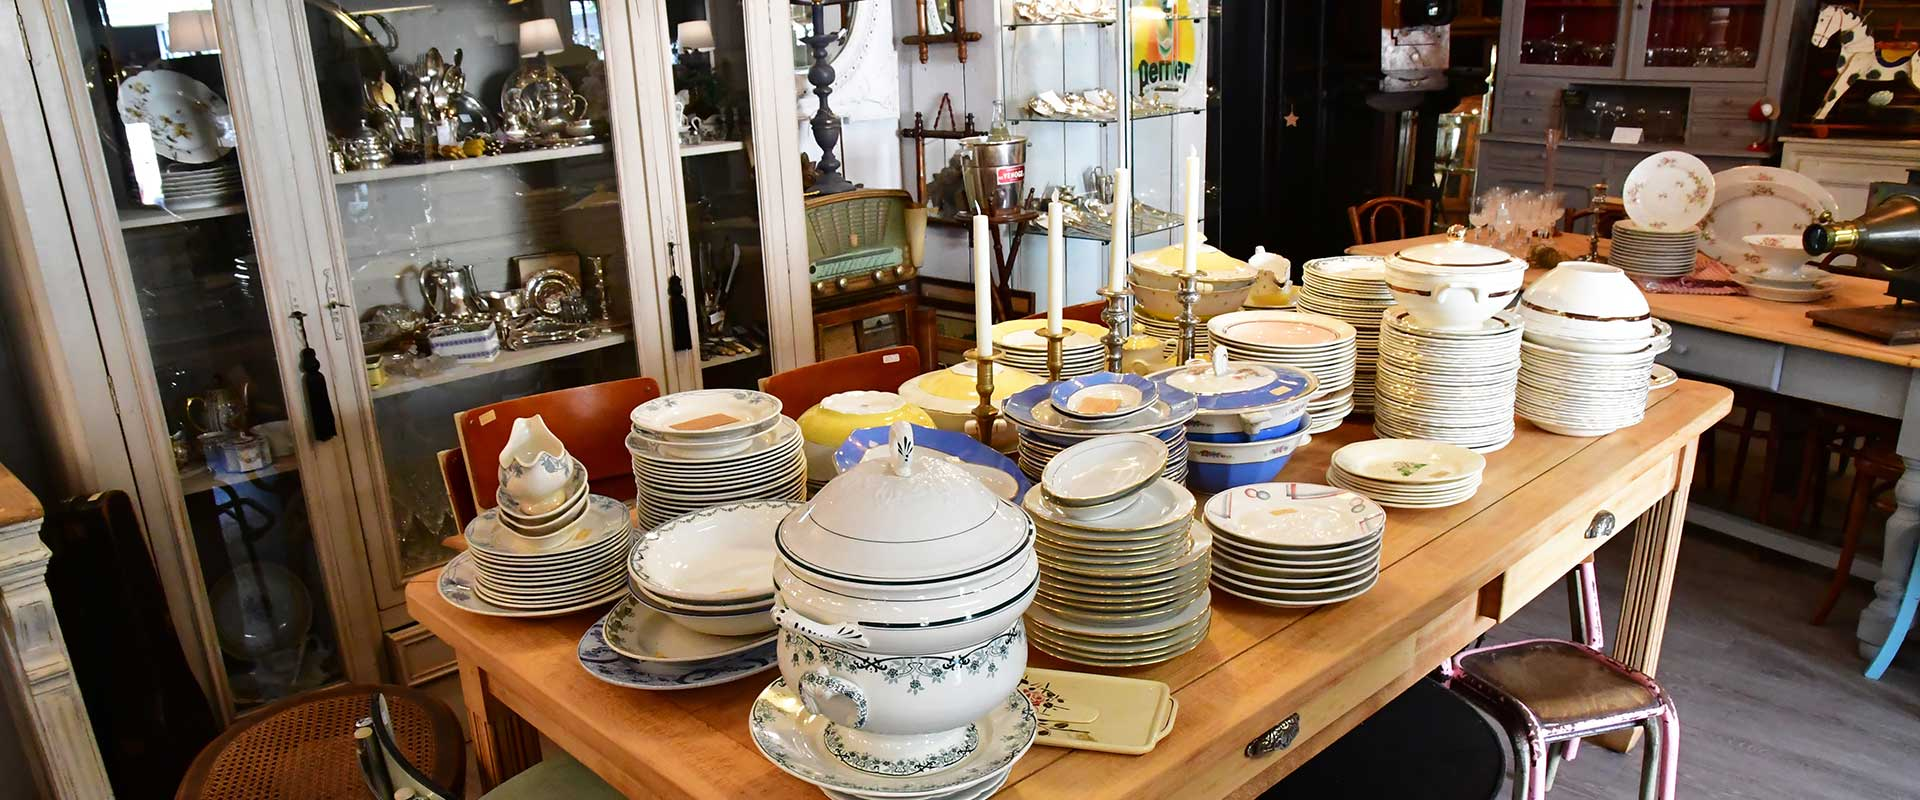 China dishes stacked on table